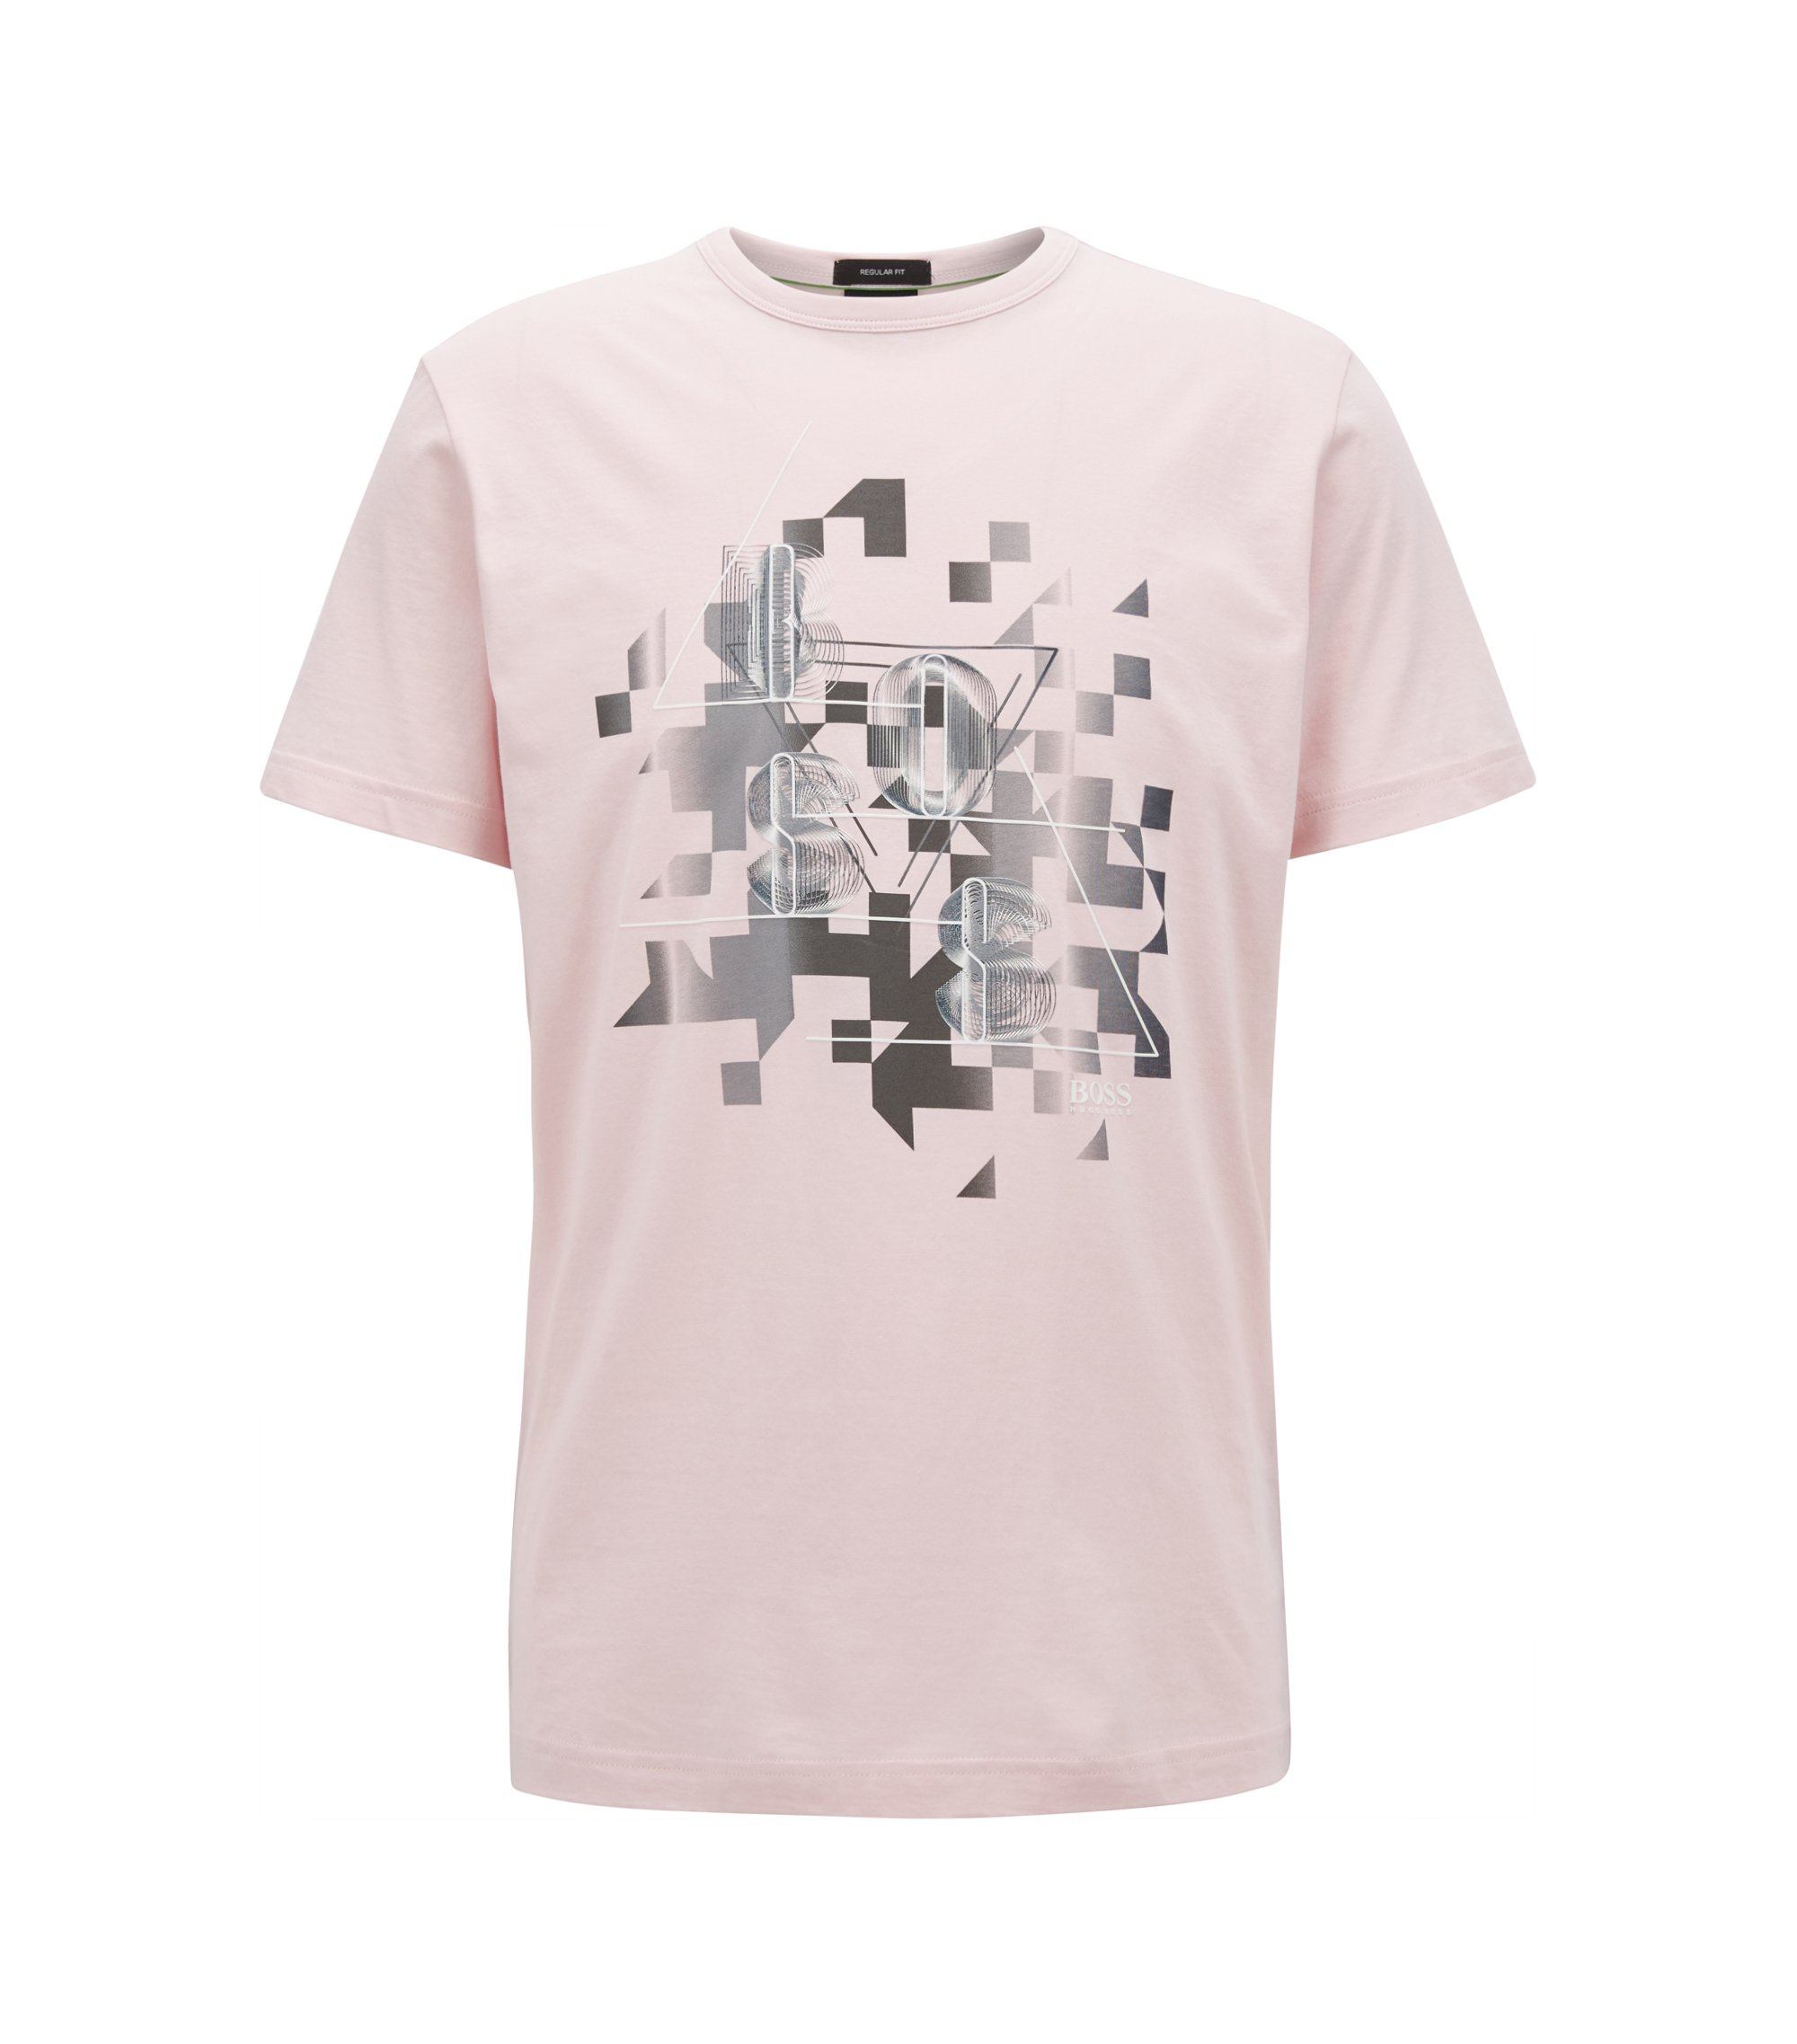 Cotton T-shirt with dynamic artwork, light pink